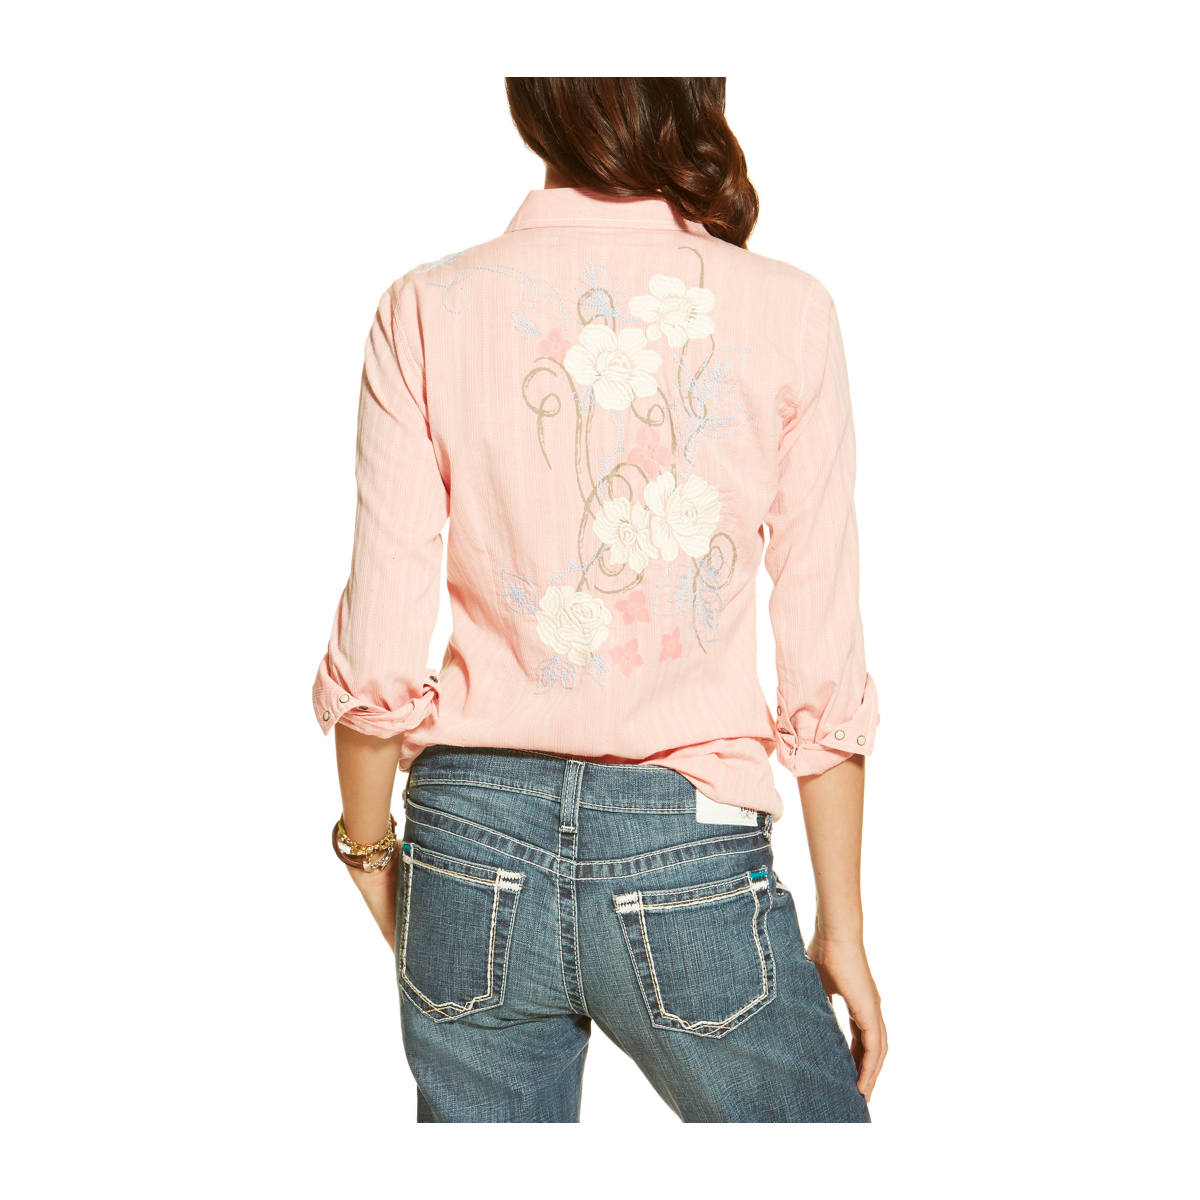 Back pink Ariat shirt 2016